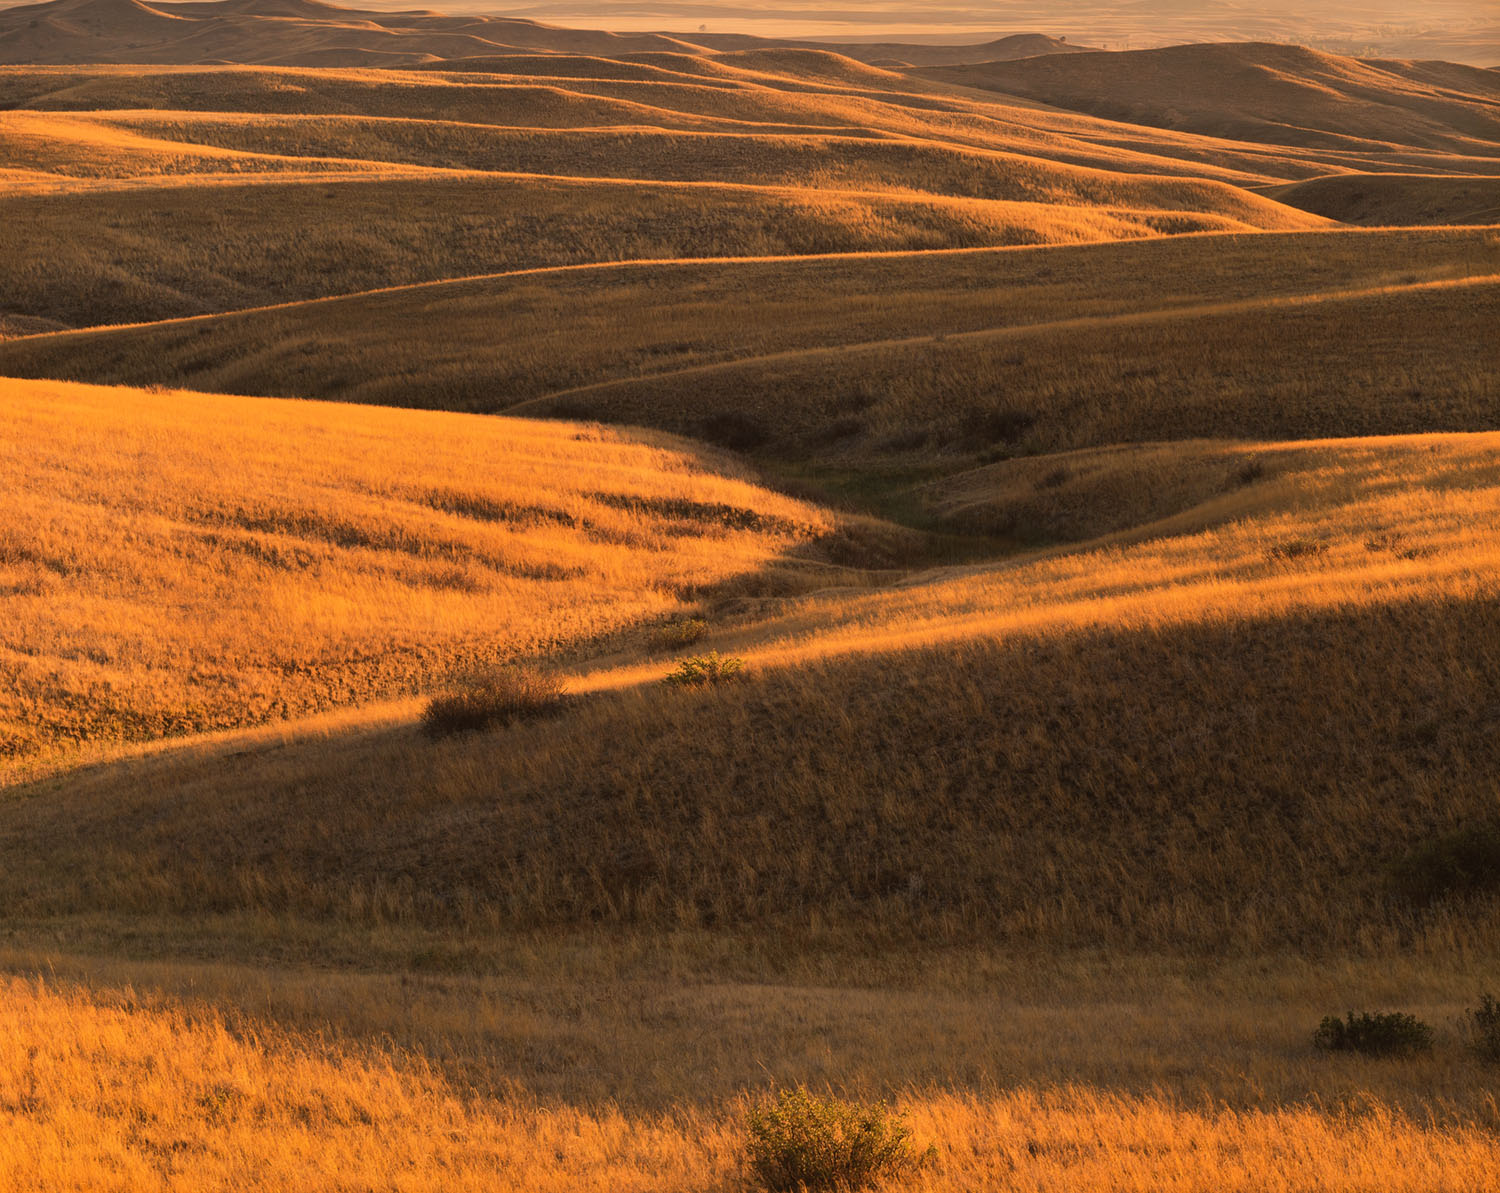 Sunset, Valley of the Little Bighorn